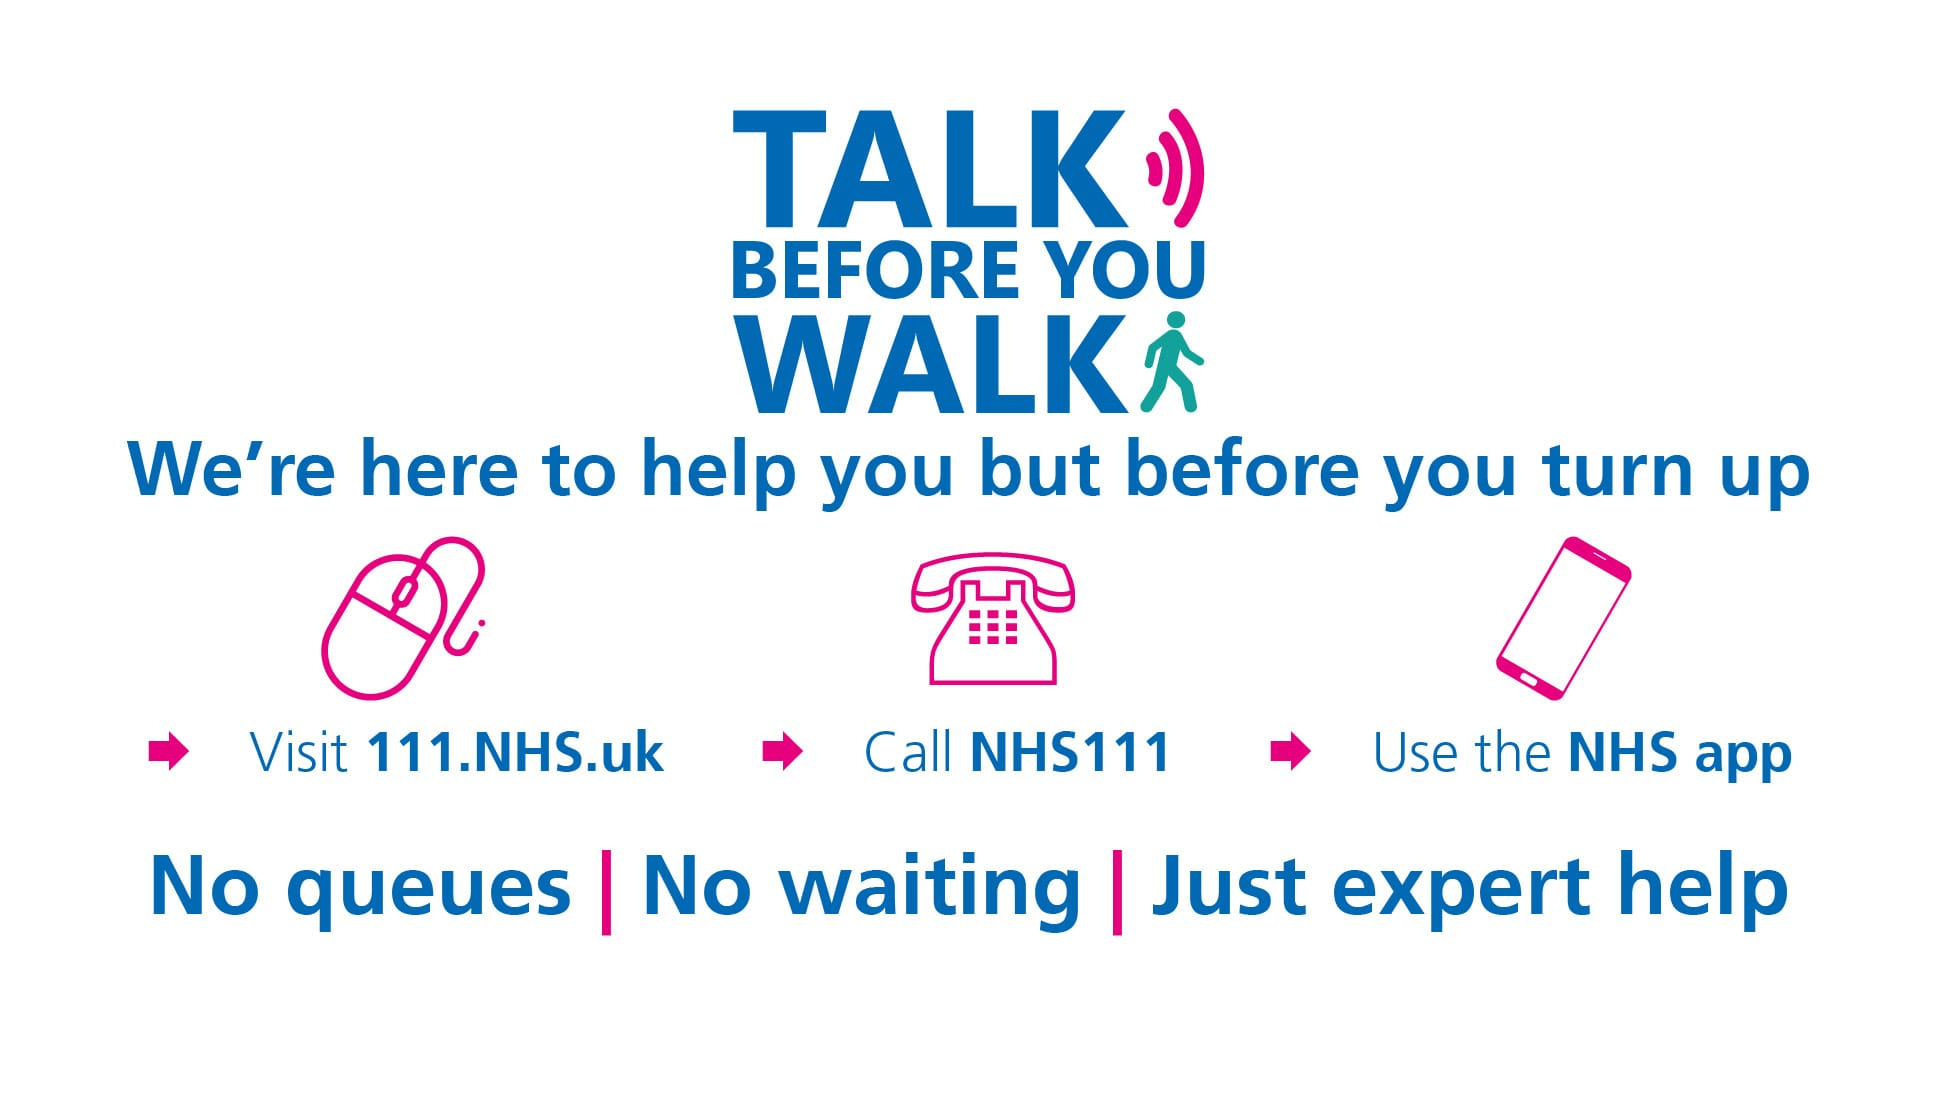 Talk before you walk campaign